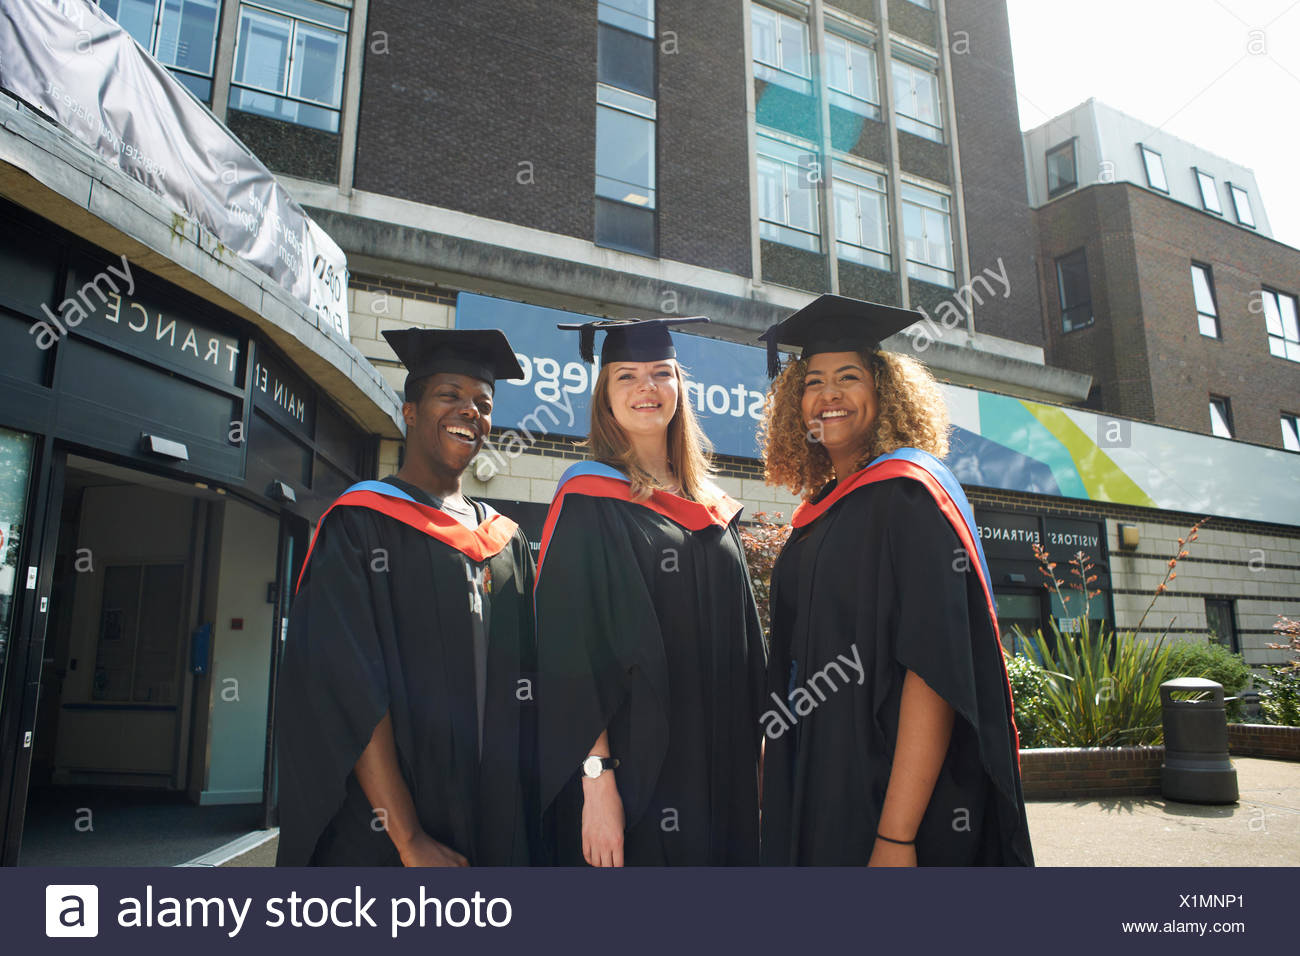 Portrait of three college students in graduation gowns and caps ...